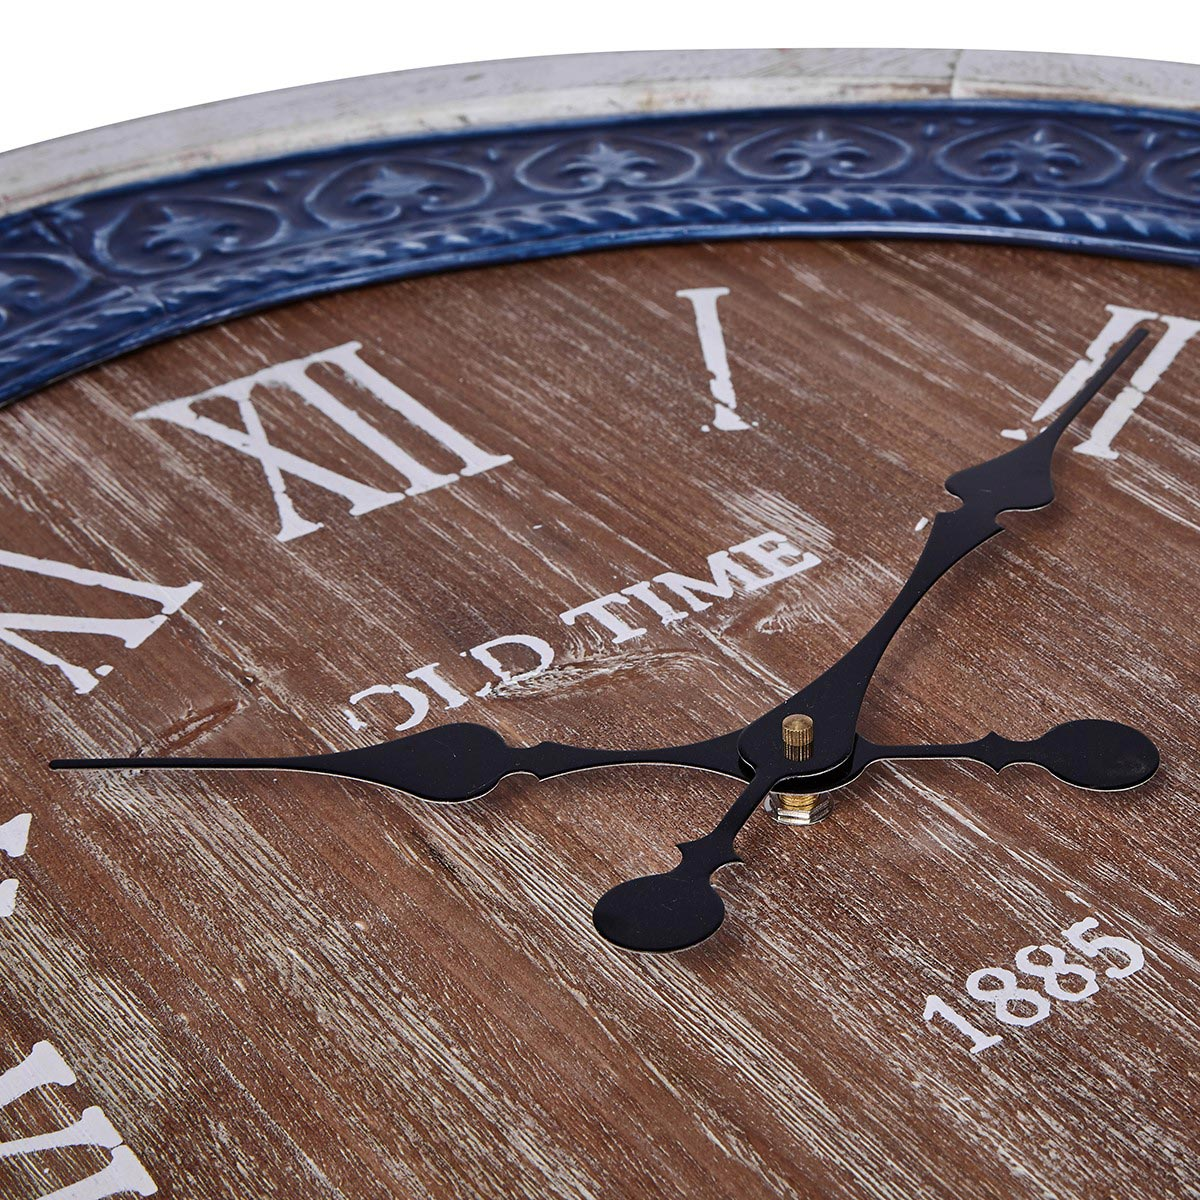 Nautical Clocks Cobalt Tile Wall Clock